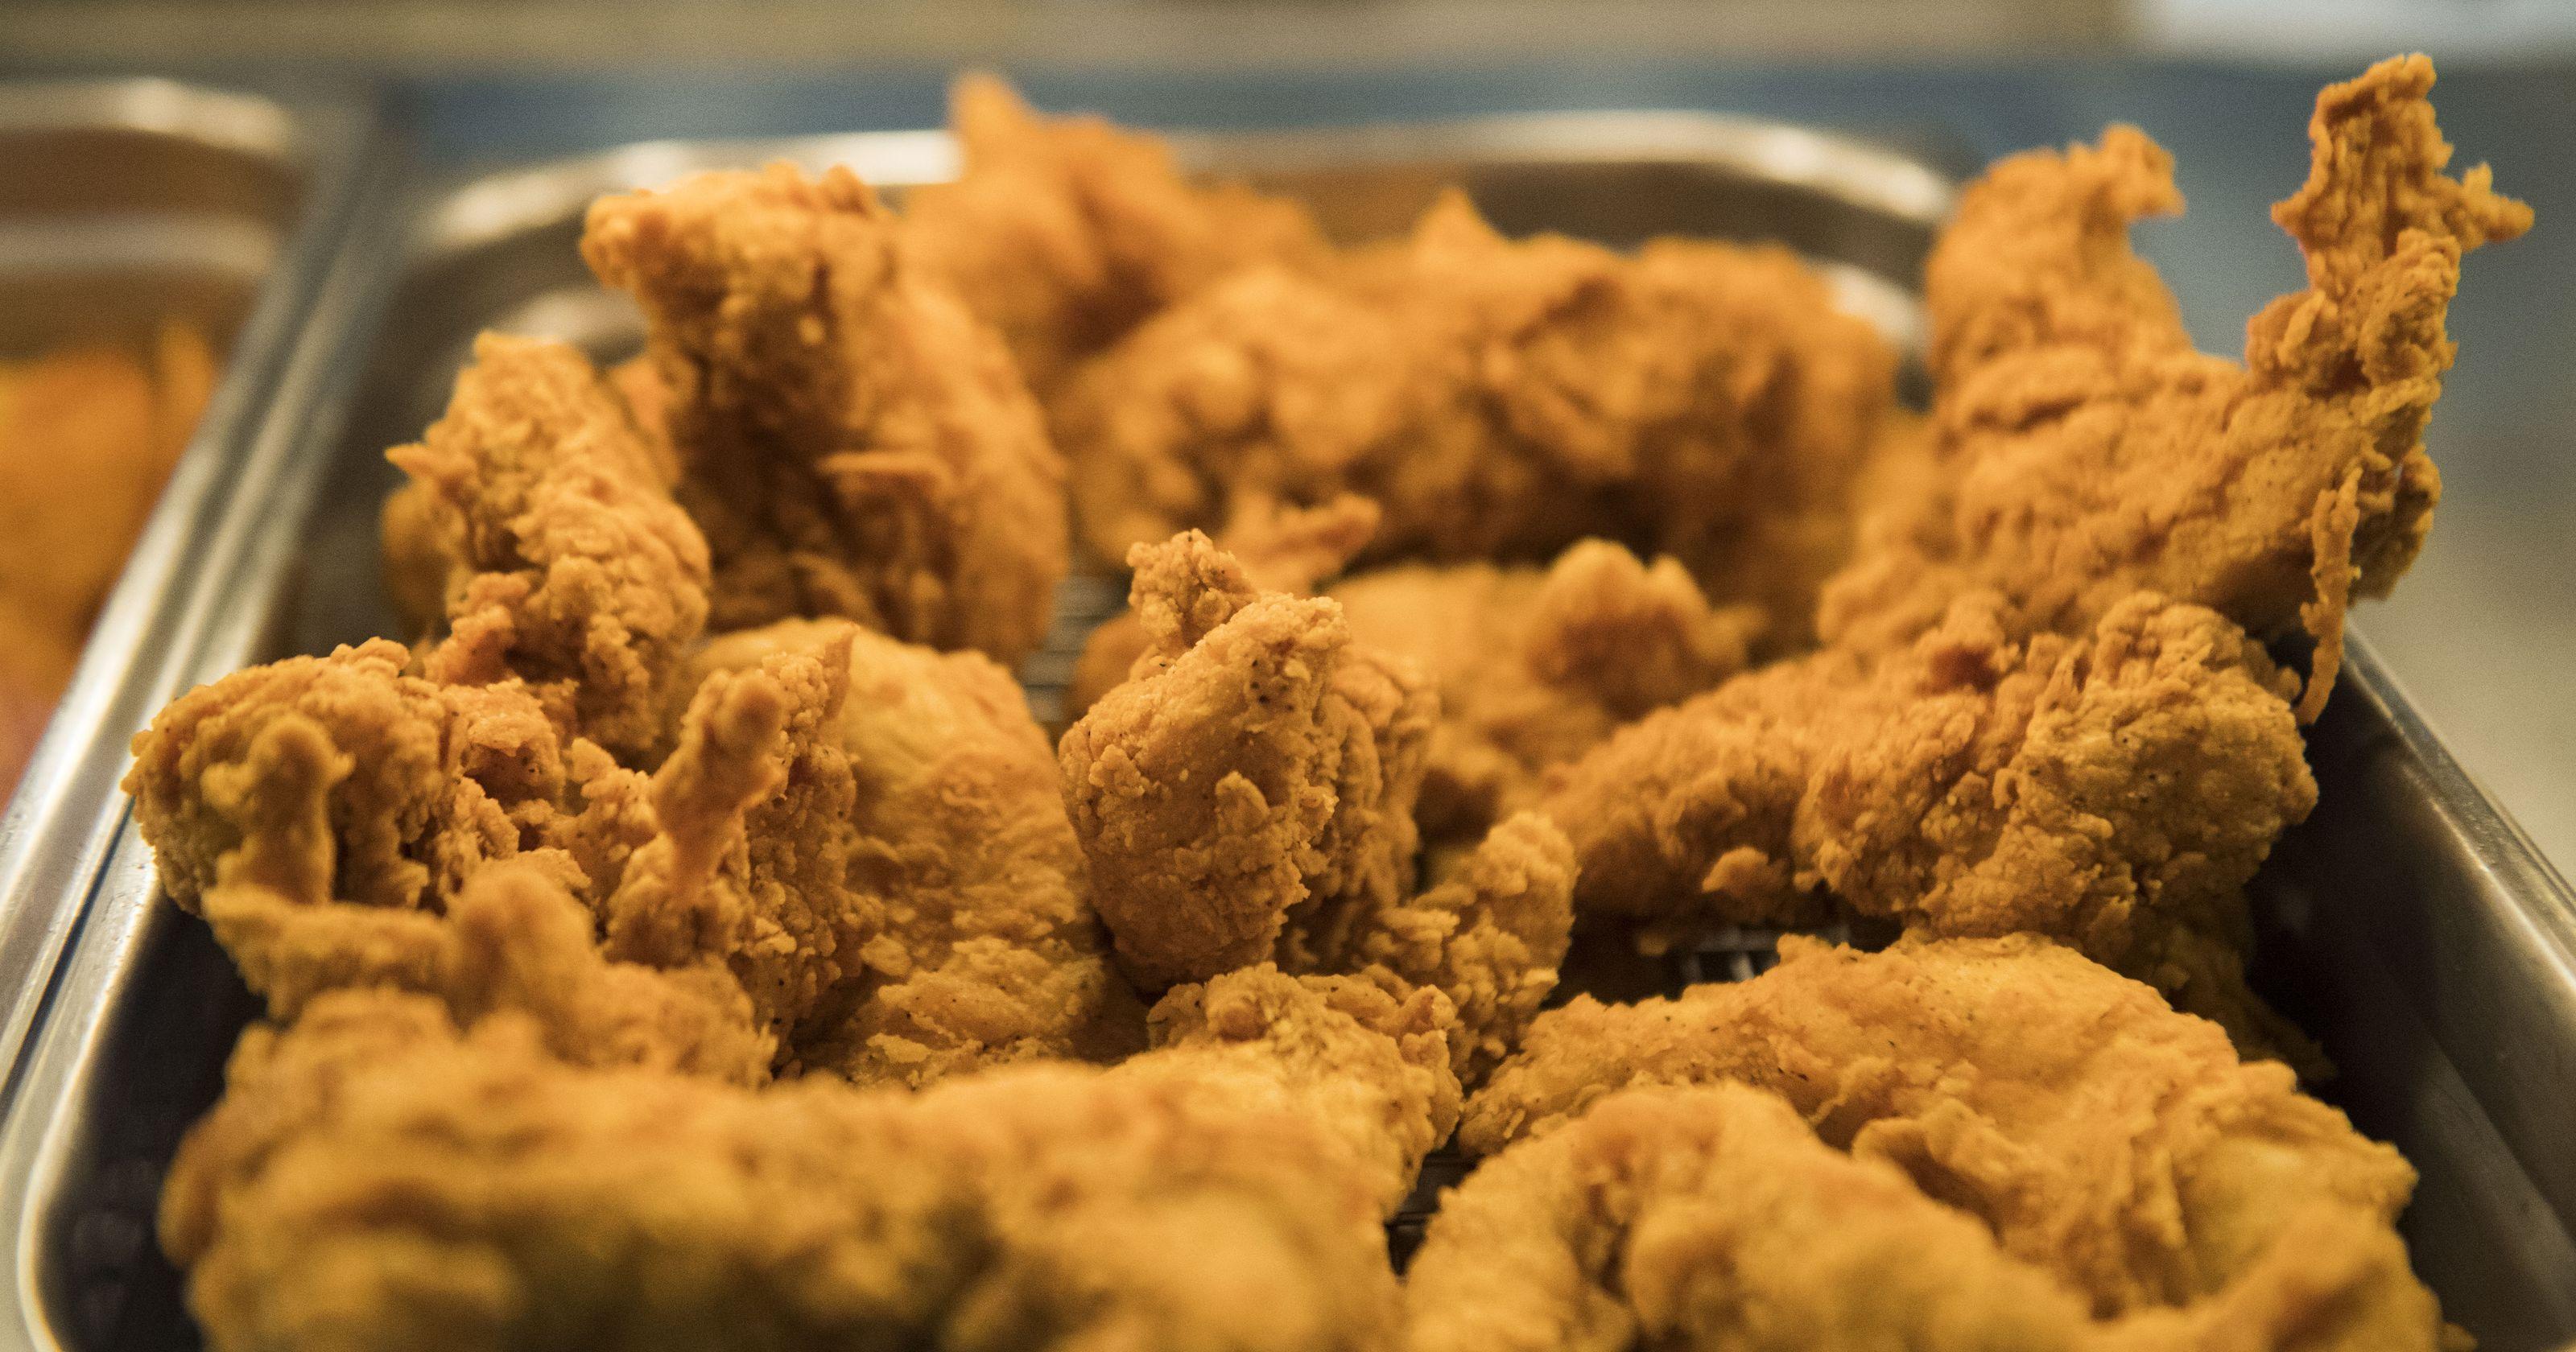 Best Fast Food Fried Chicken  Krispy Krunchy Chicken in Knoxville Where to find the